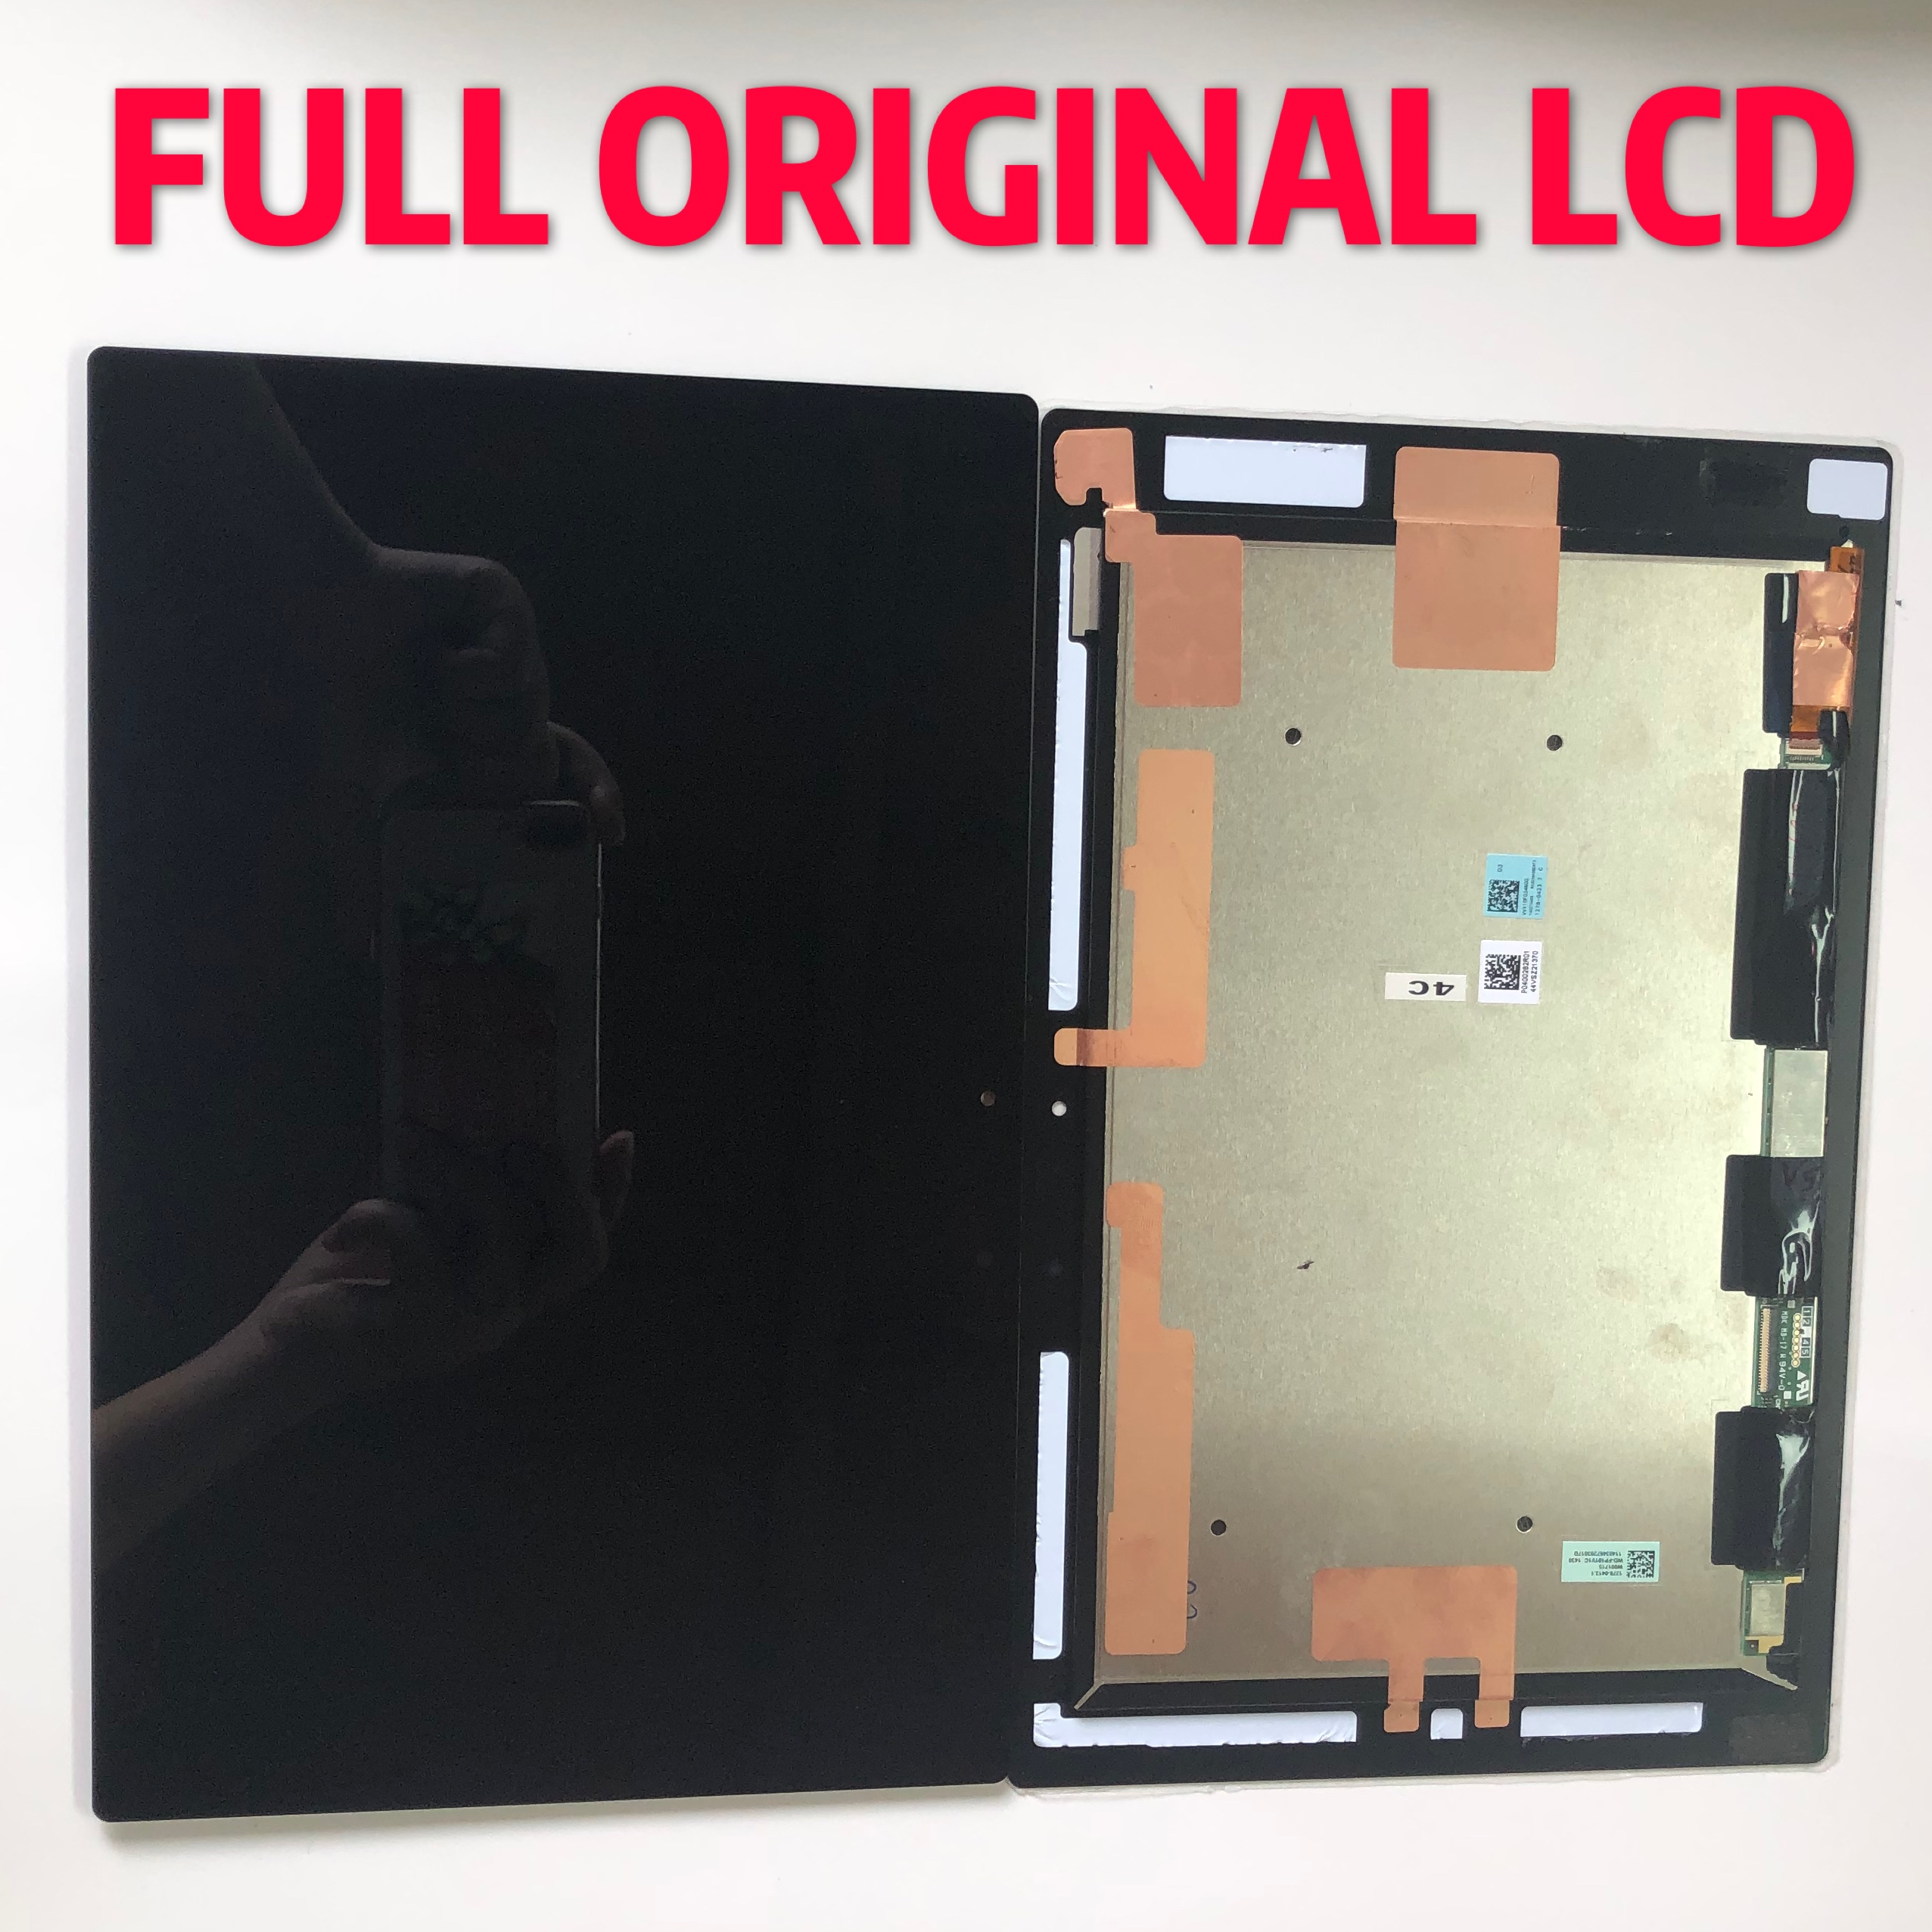 ORIGINAL LCD DISPLAY MIT TOUCH SCREEN DIGITIZER VOLLVERSAMMLUNG ERSATZ FÜR <font><b>SONY</b></font> <font><b>XPERIA</b></font> TABLET <font><b>Z2</b></font> SGP511 SGP521 image